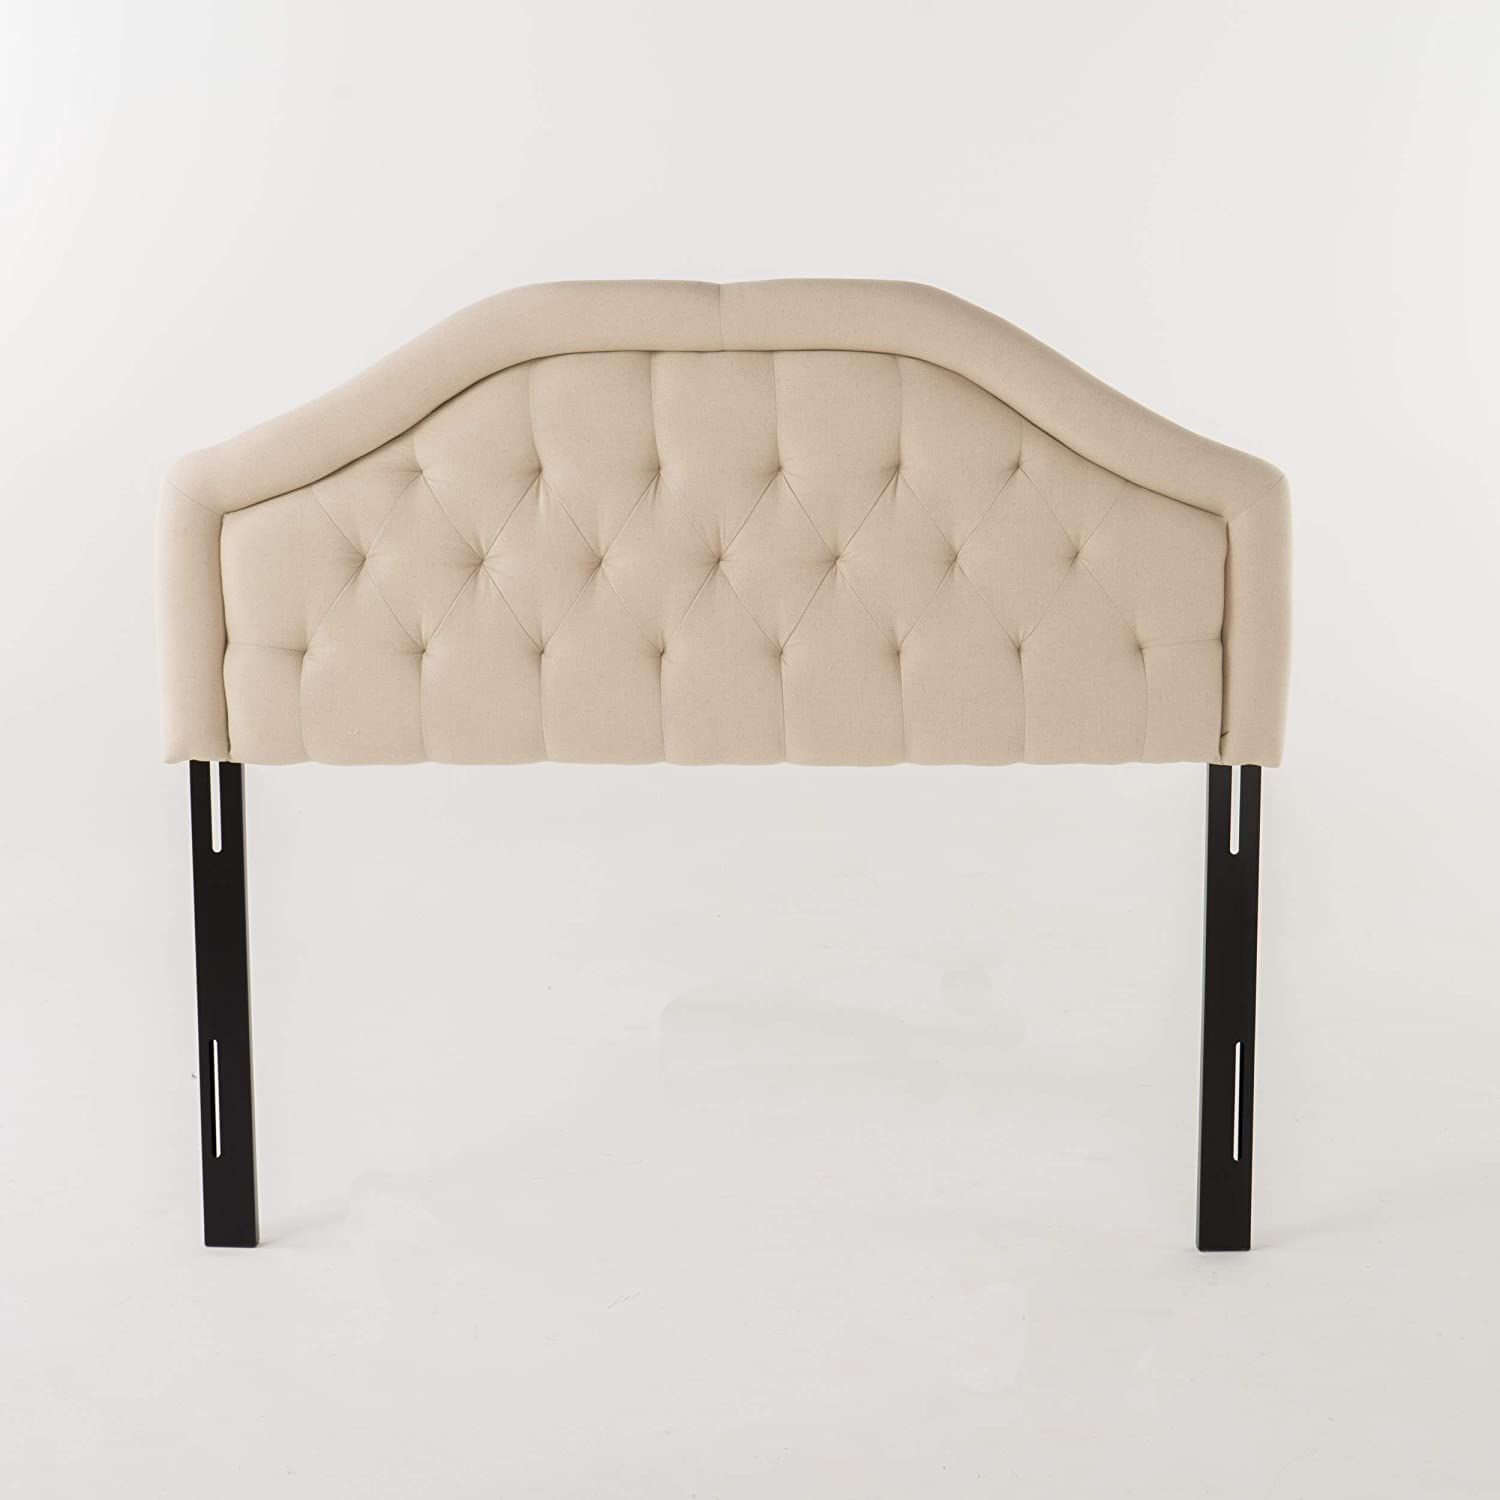 Christopher Knight Home Angelica Headboard, King / Cal King, Beige